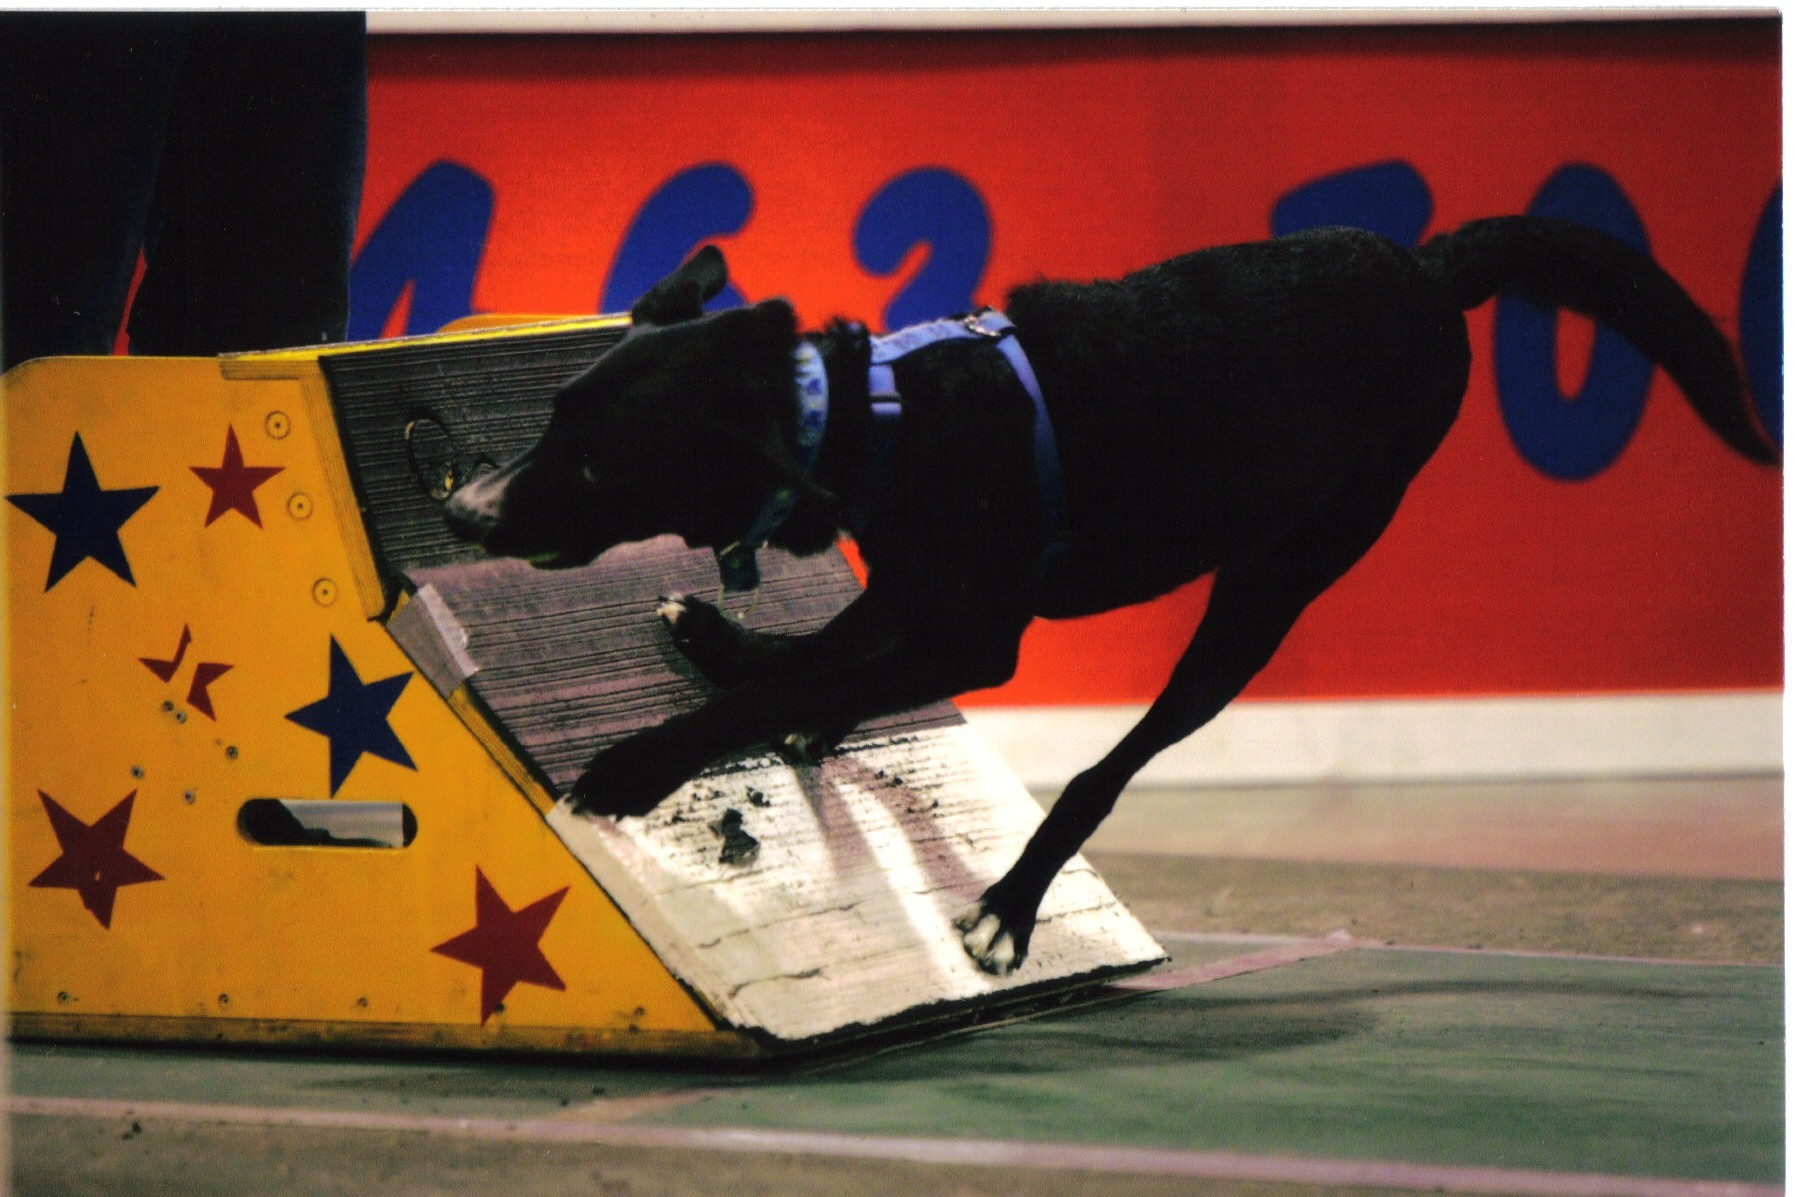 Black dog pushing off a competition wall.